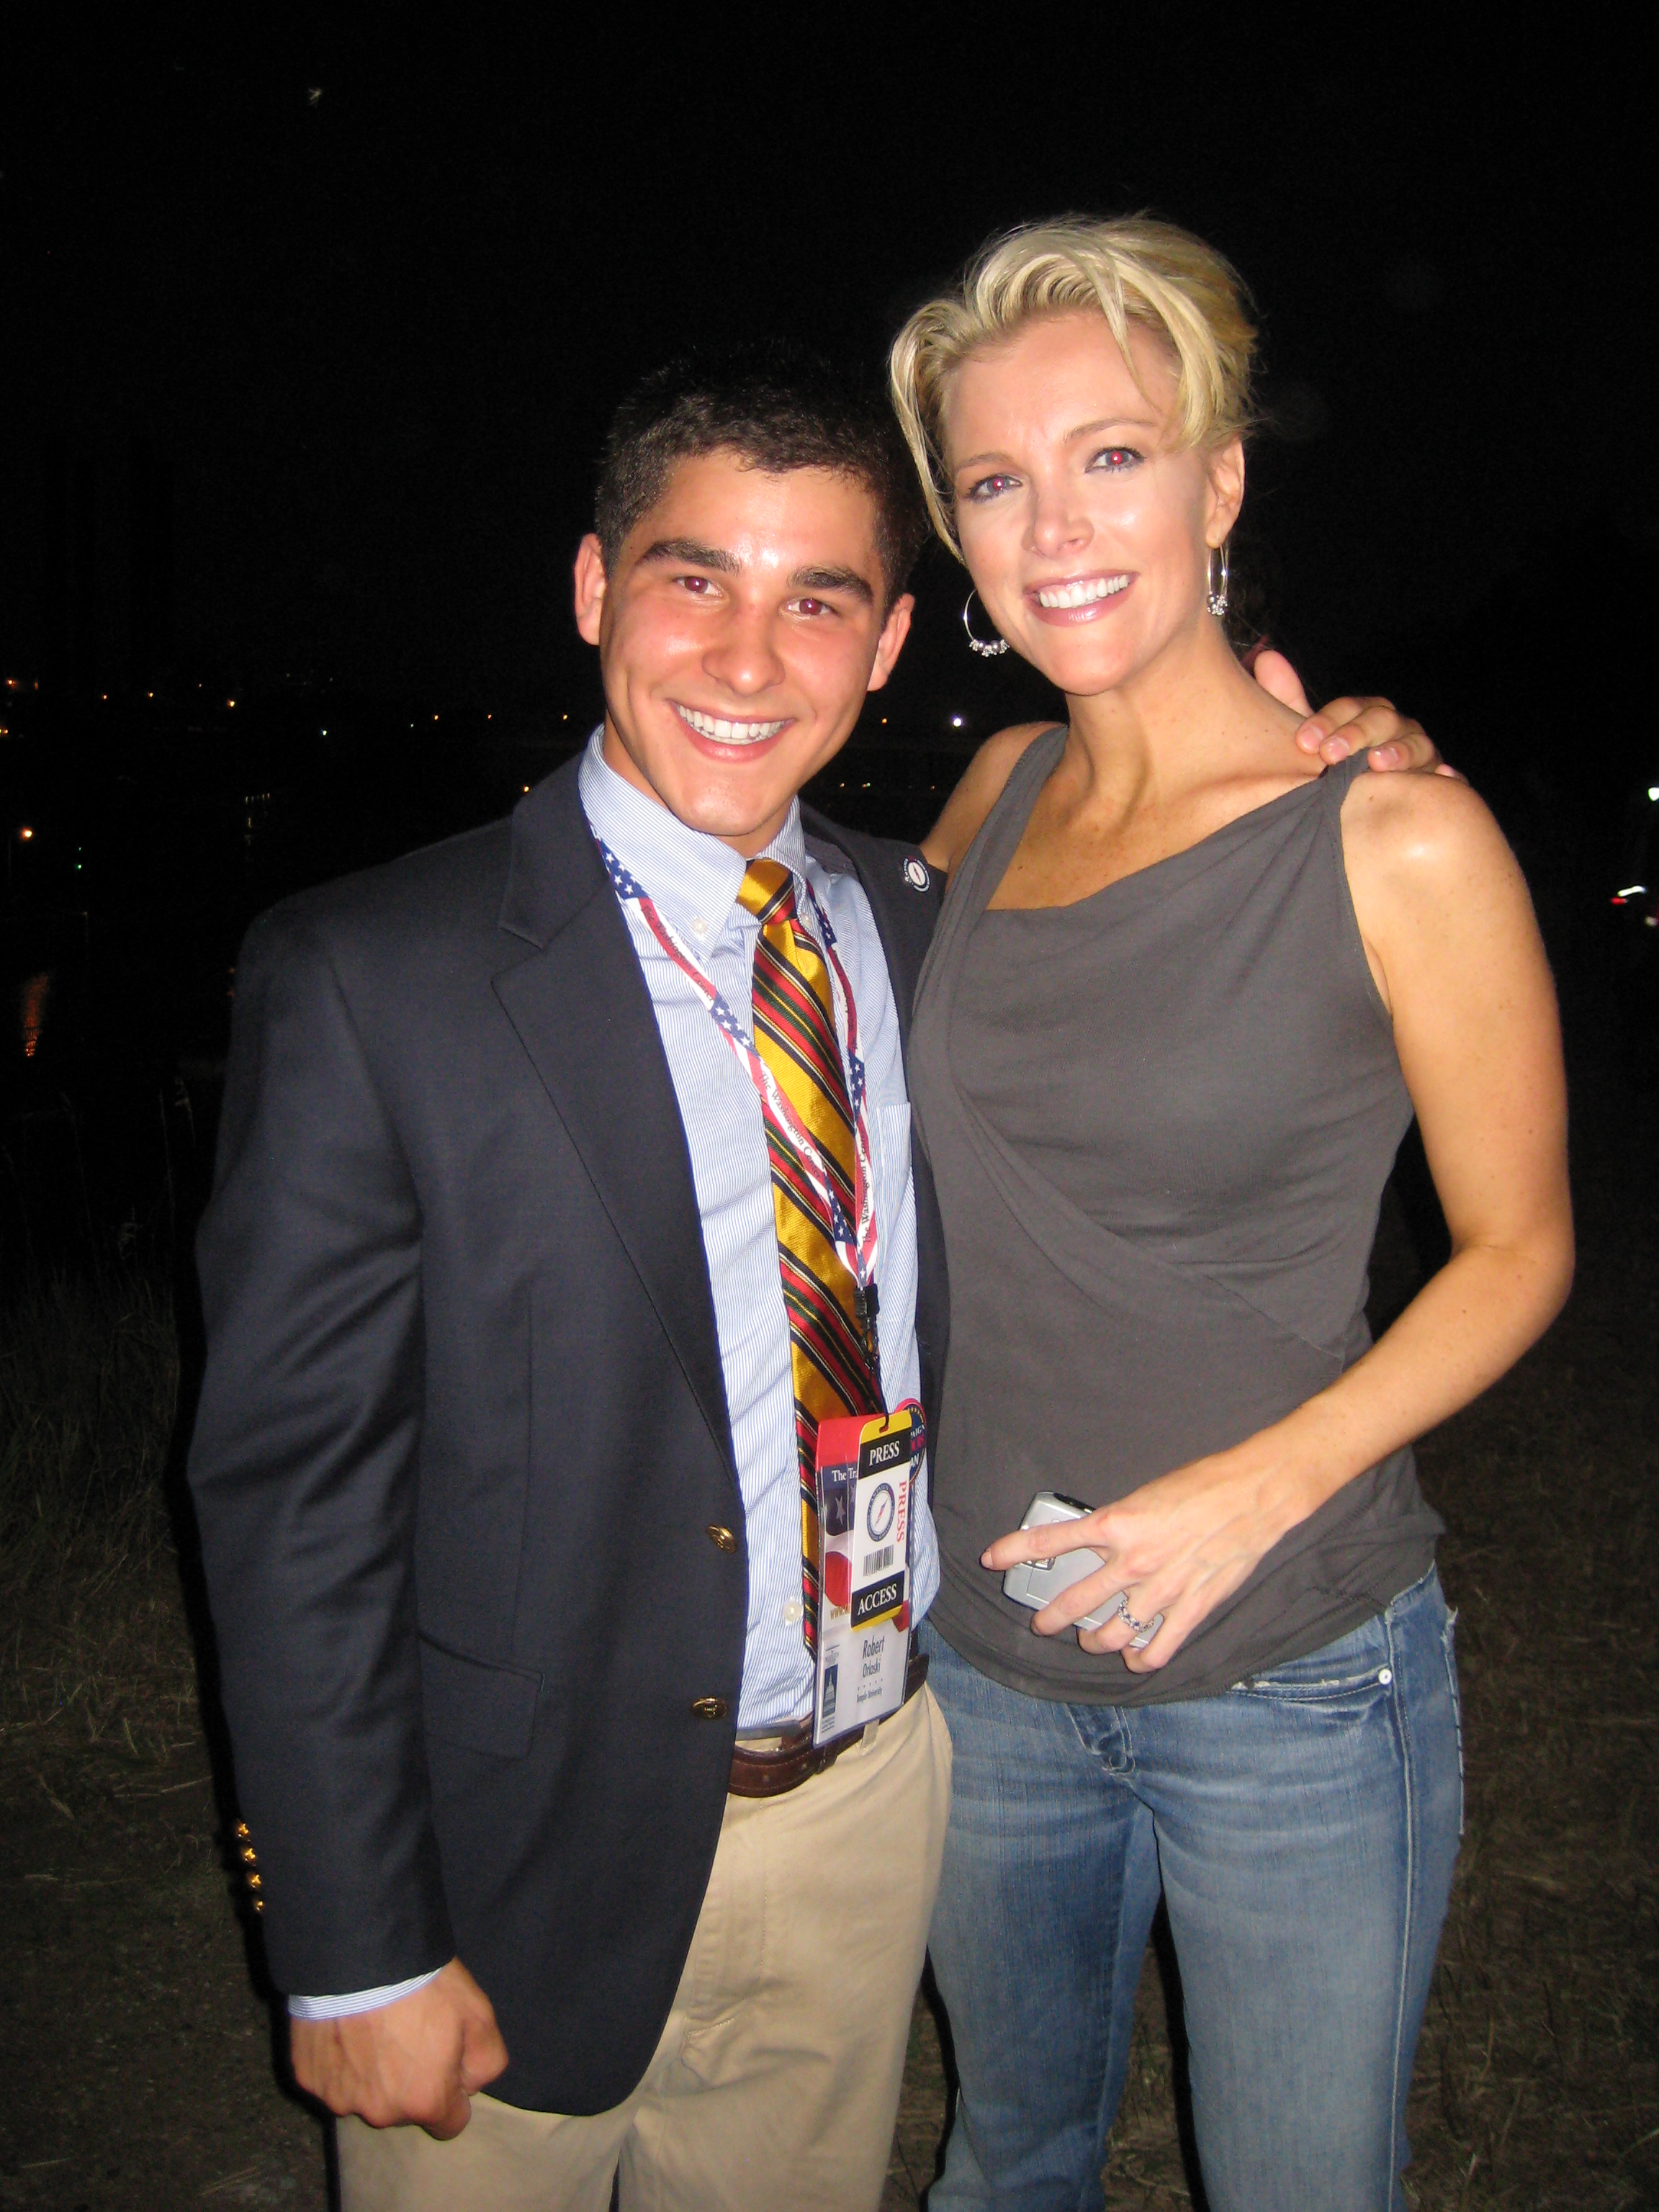 Me with MEGYN KELLY